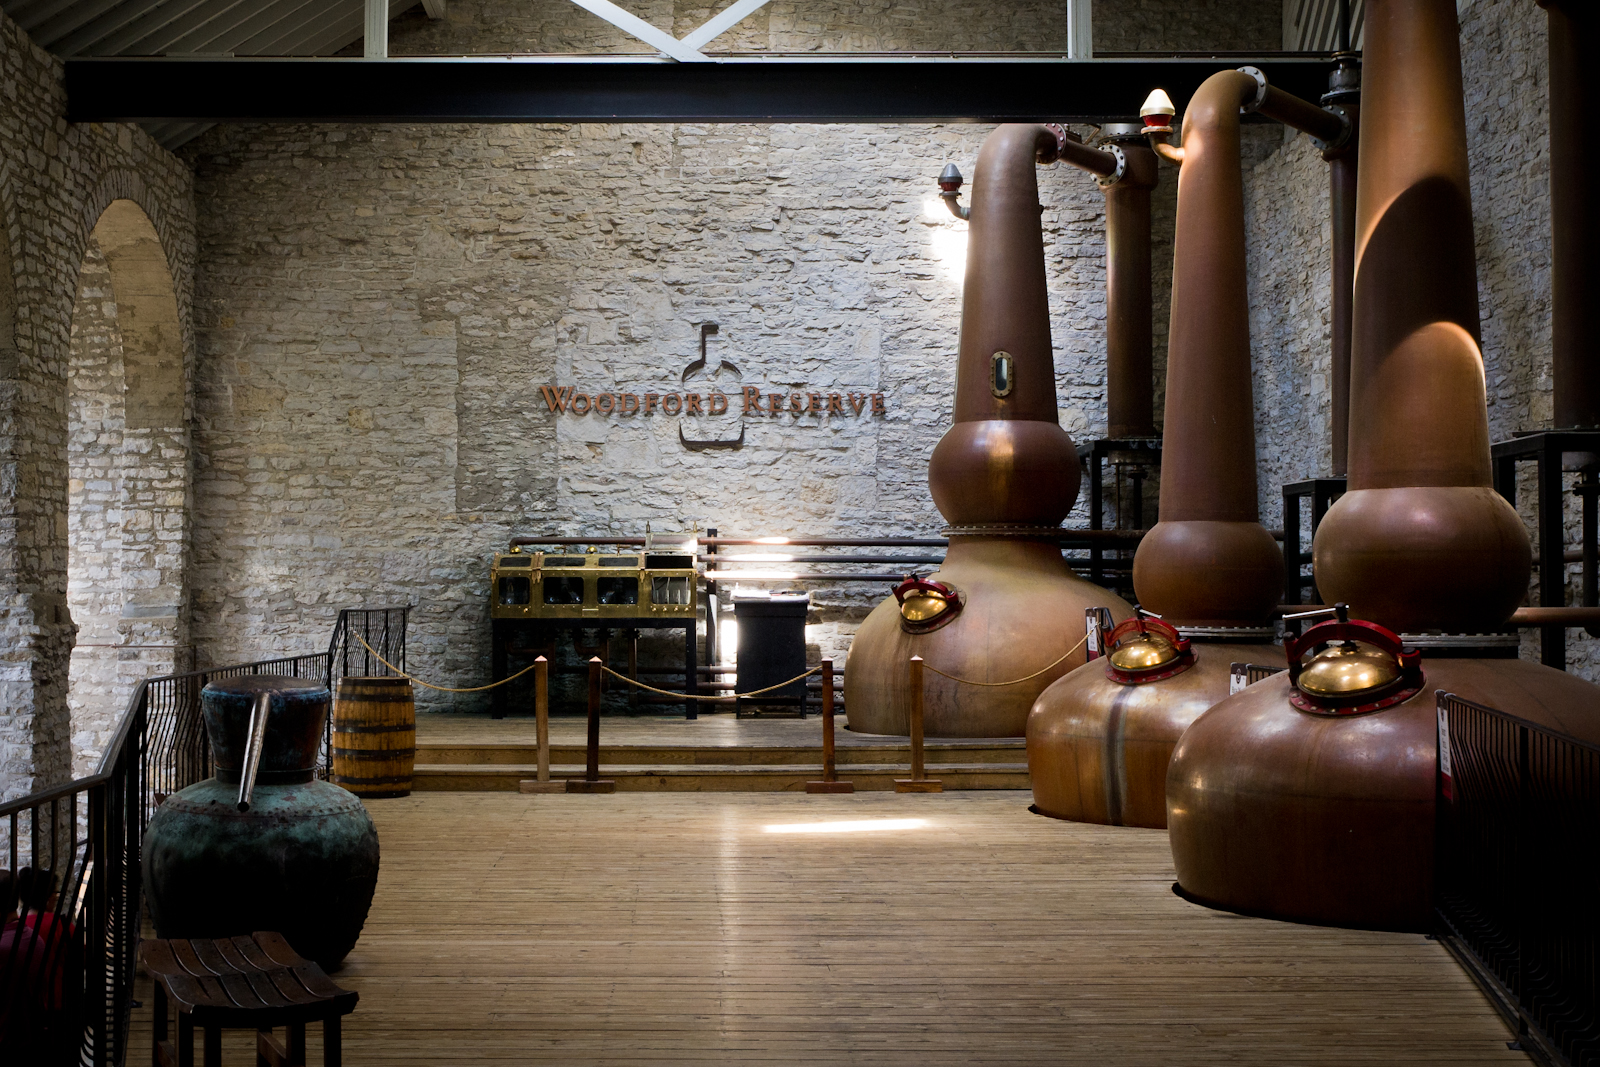 The Woodford Reserve Distillery still room